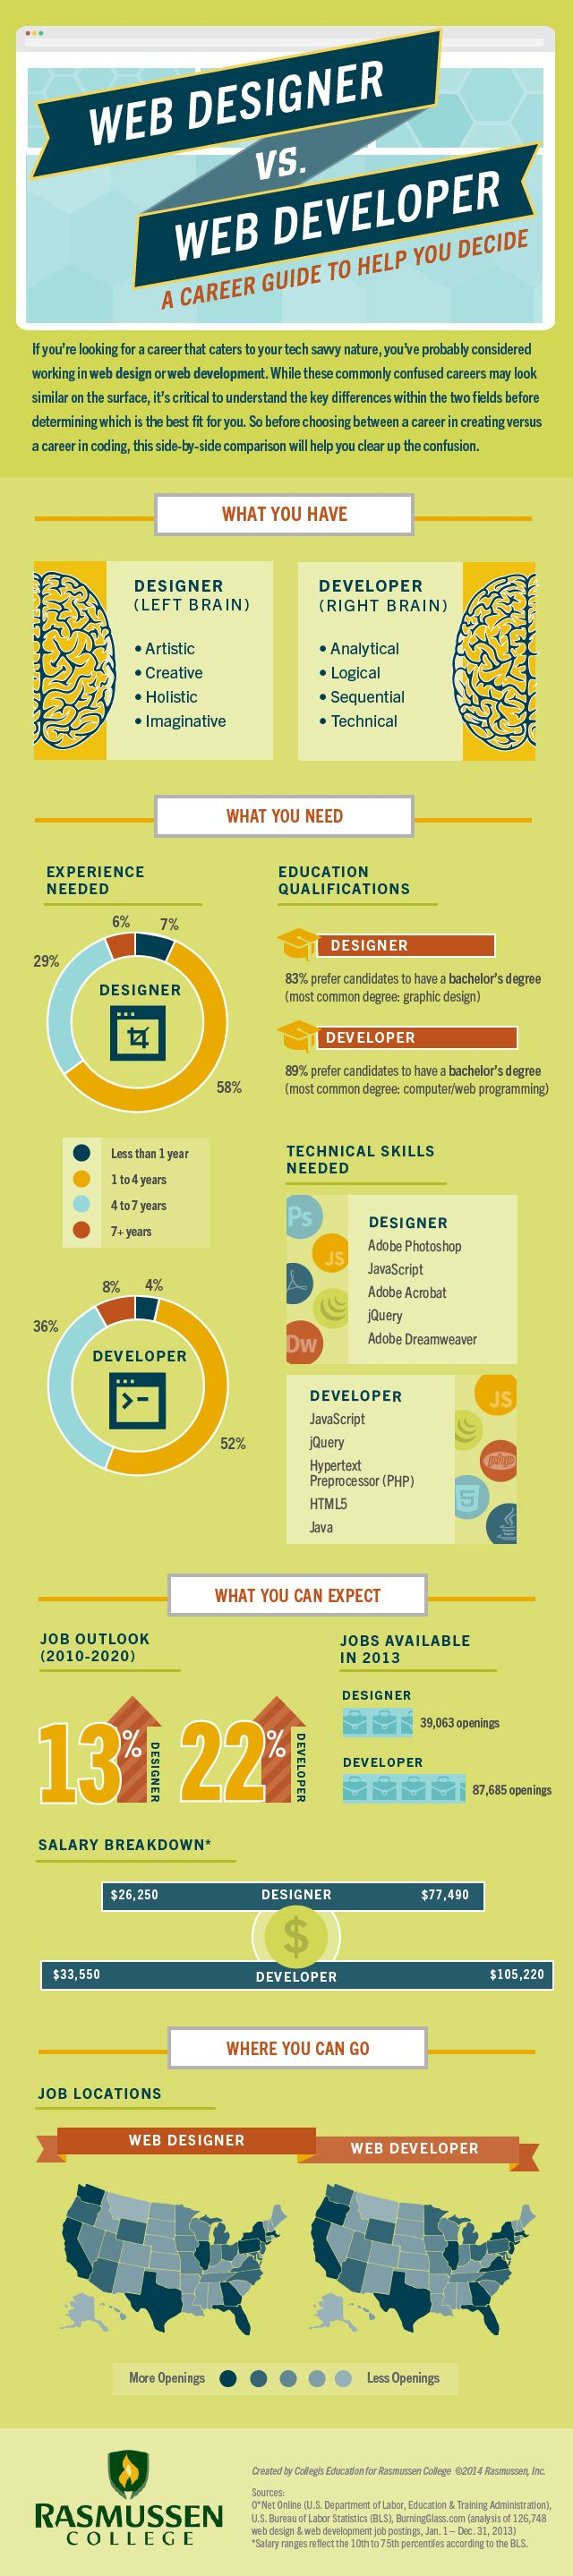 Web Designer vs. Web Developer: A Career Guide to Help You Decide [Infographic]